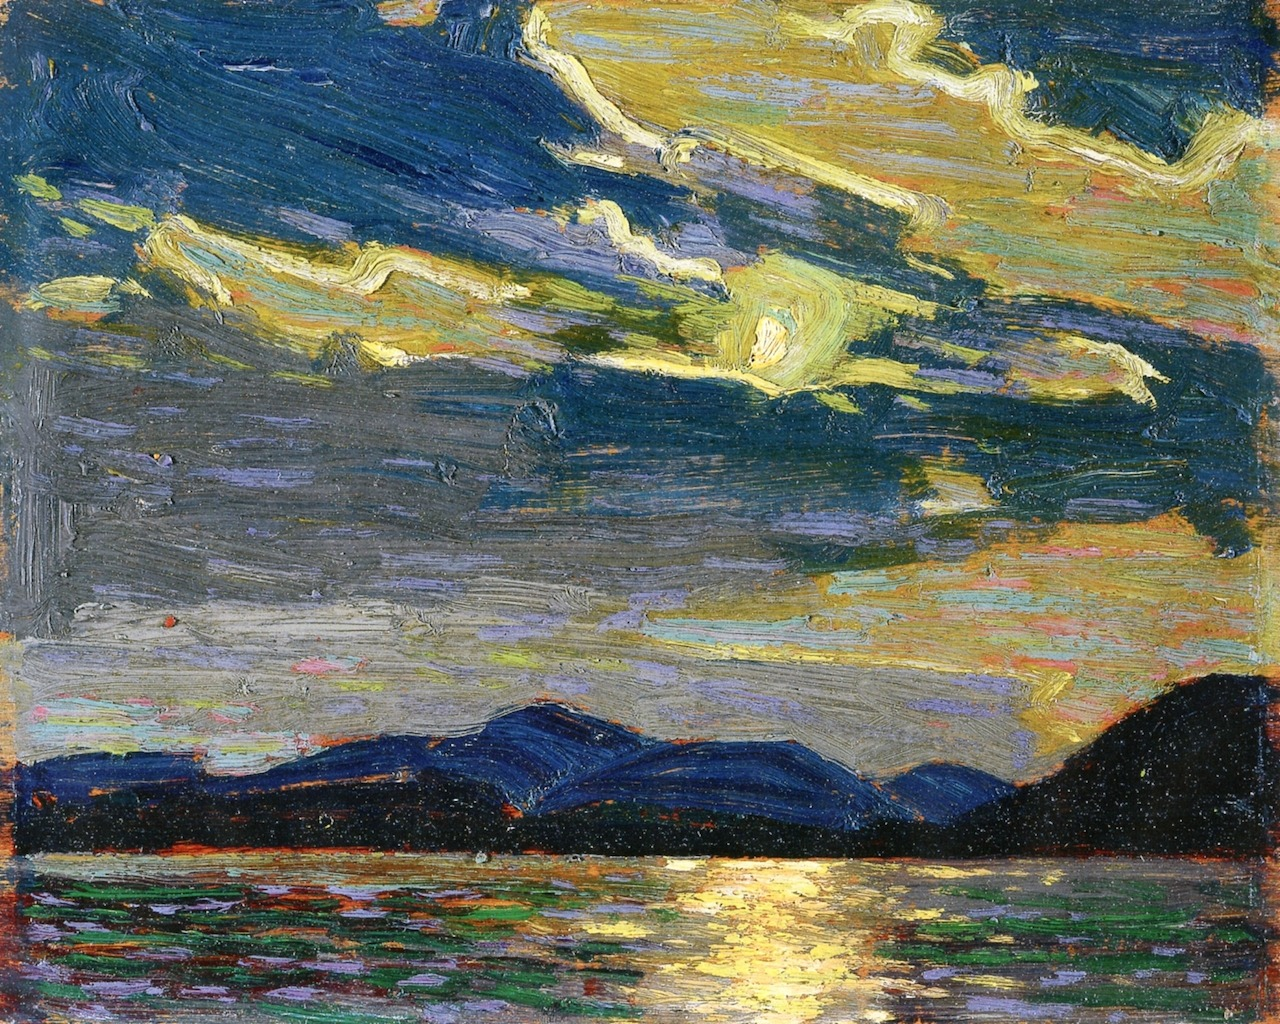 dappledwithshadow: